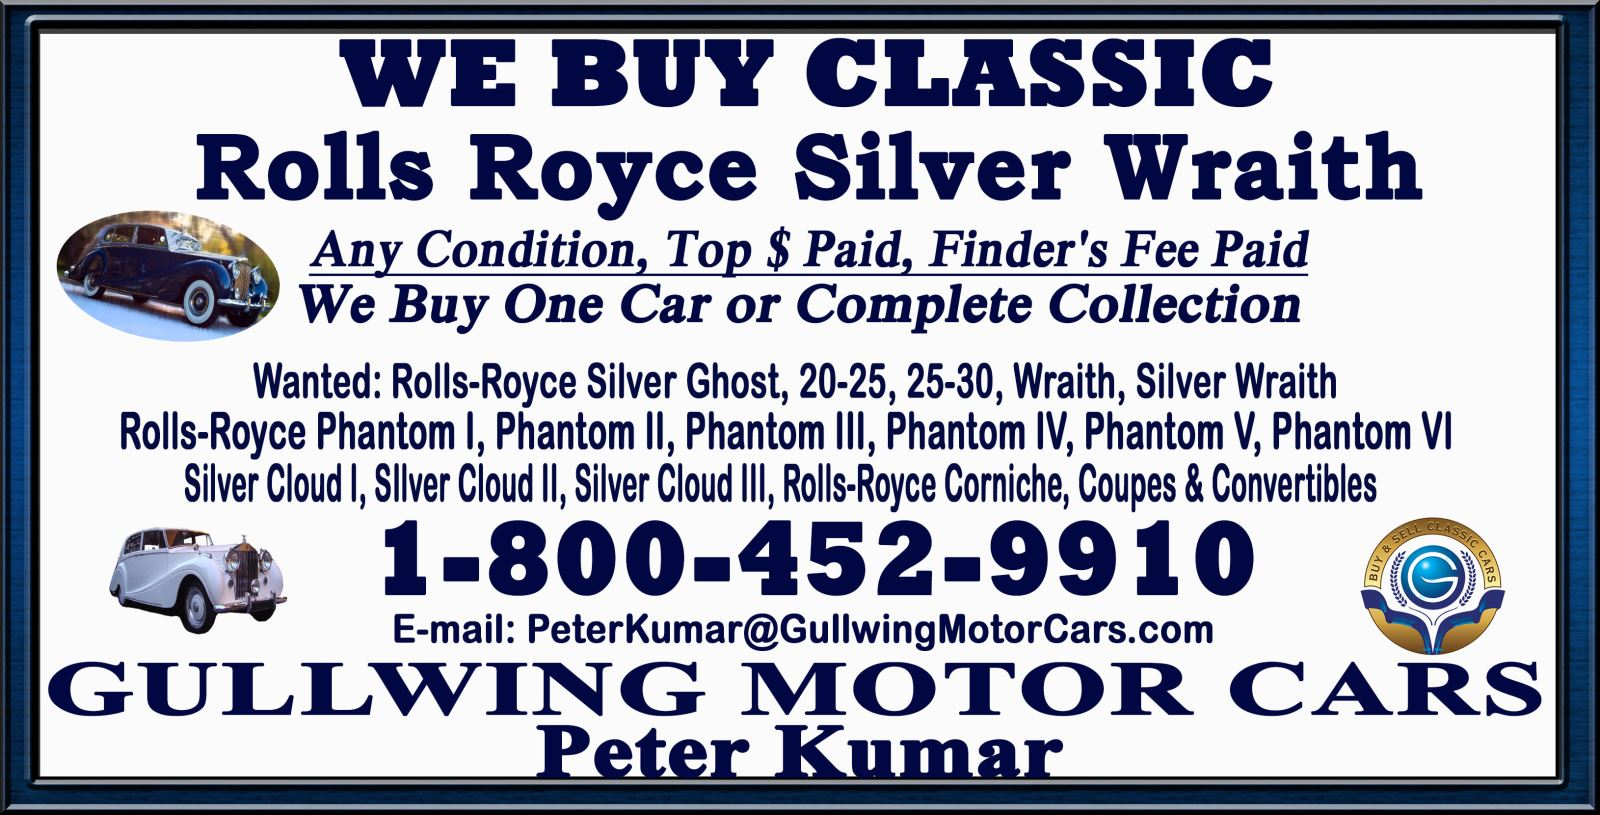 Sell Classic Rolls Royce Silver Wraith | Call Gullwing Motor if Vintage Rolls Royce Silver Wraith For Sale